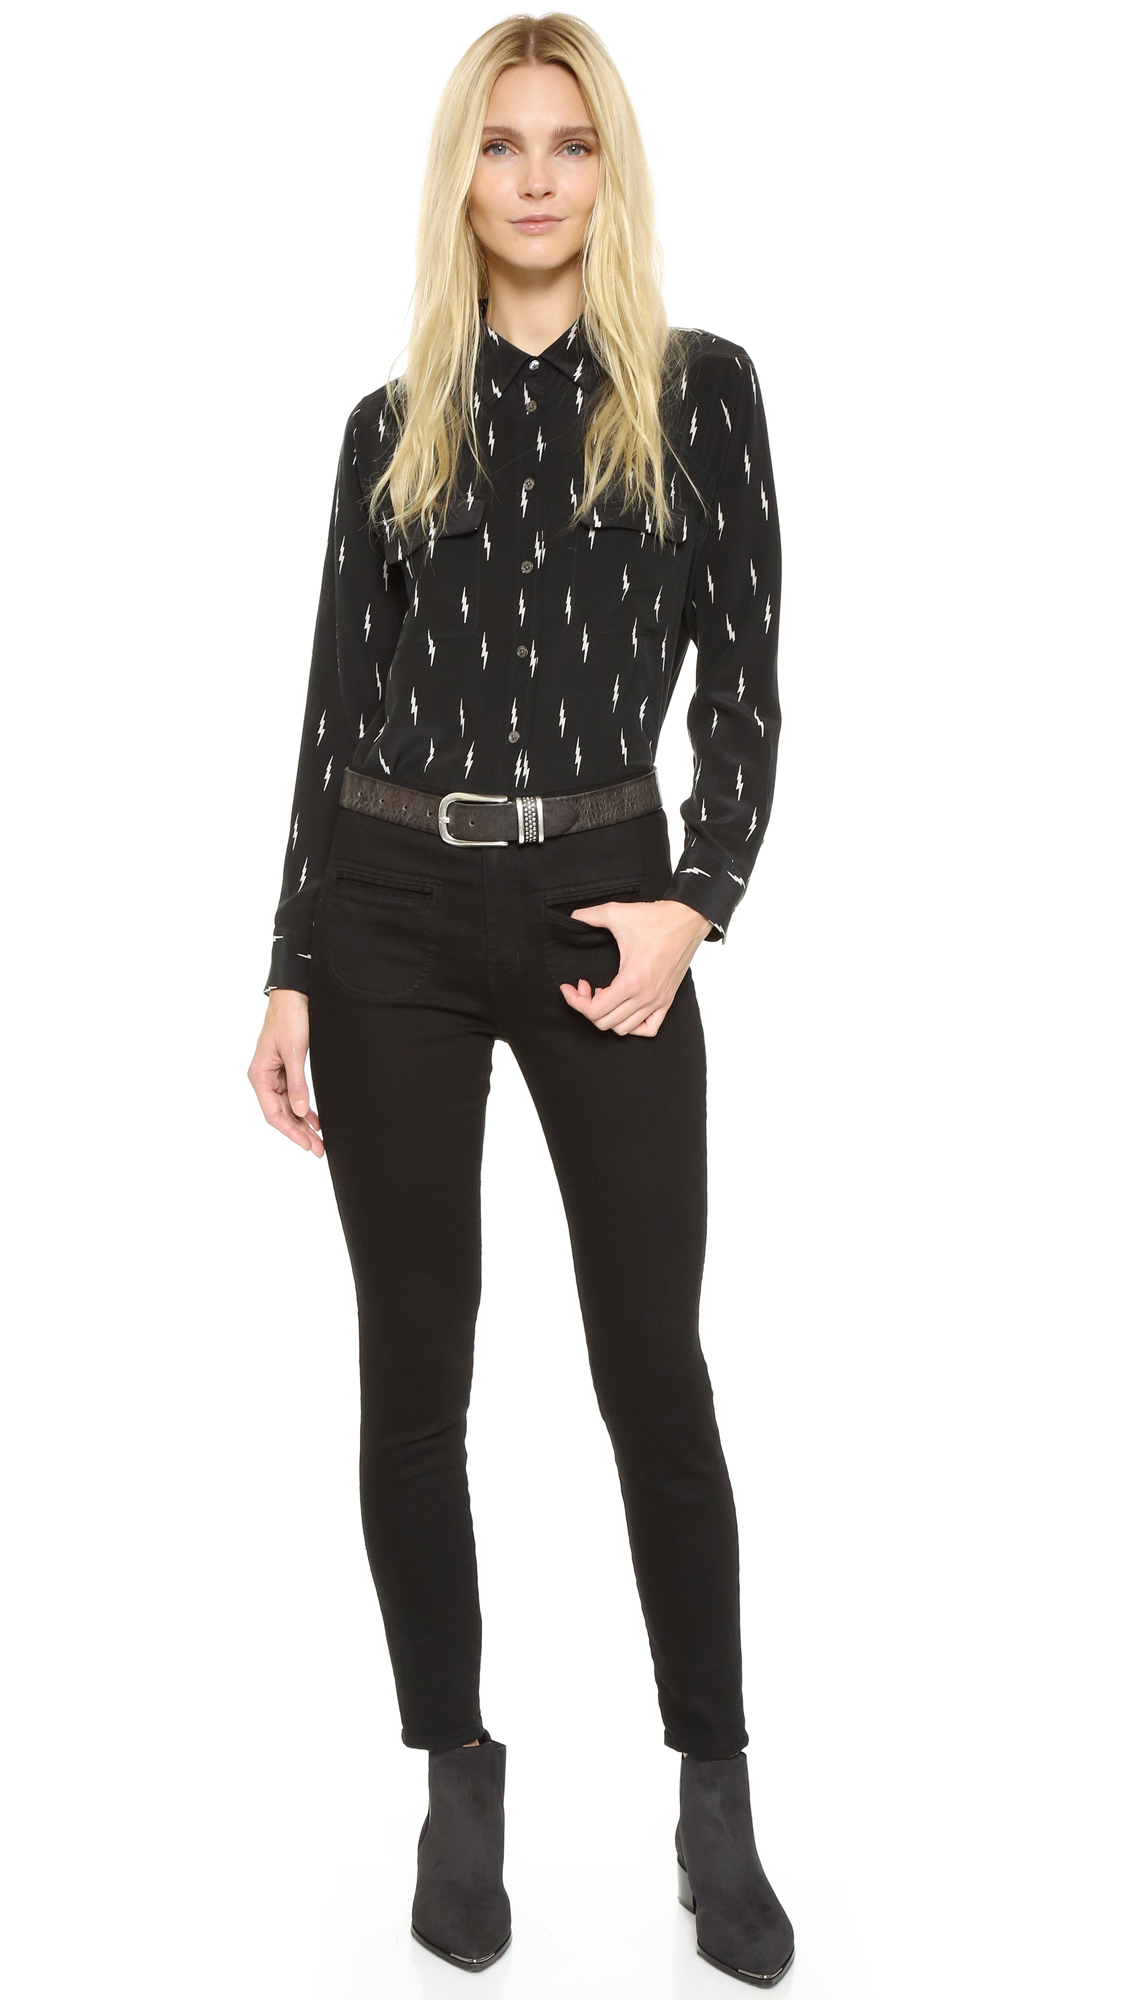 Equipment Kate Moss Slim Signature Blouse Shopbop